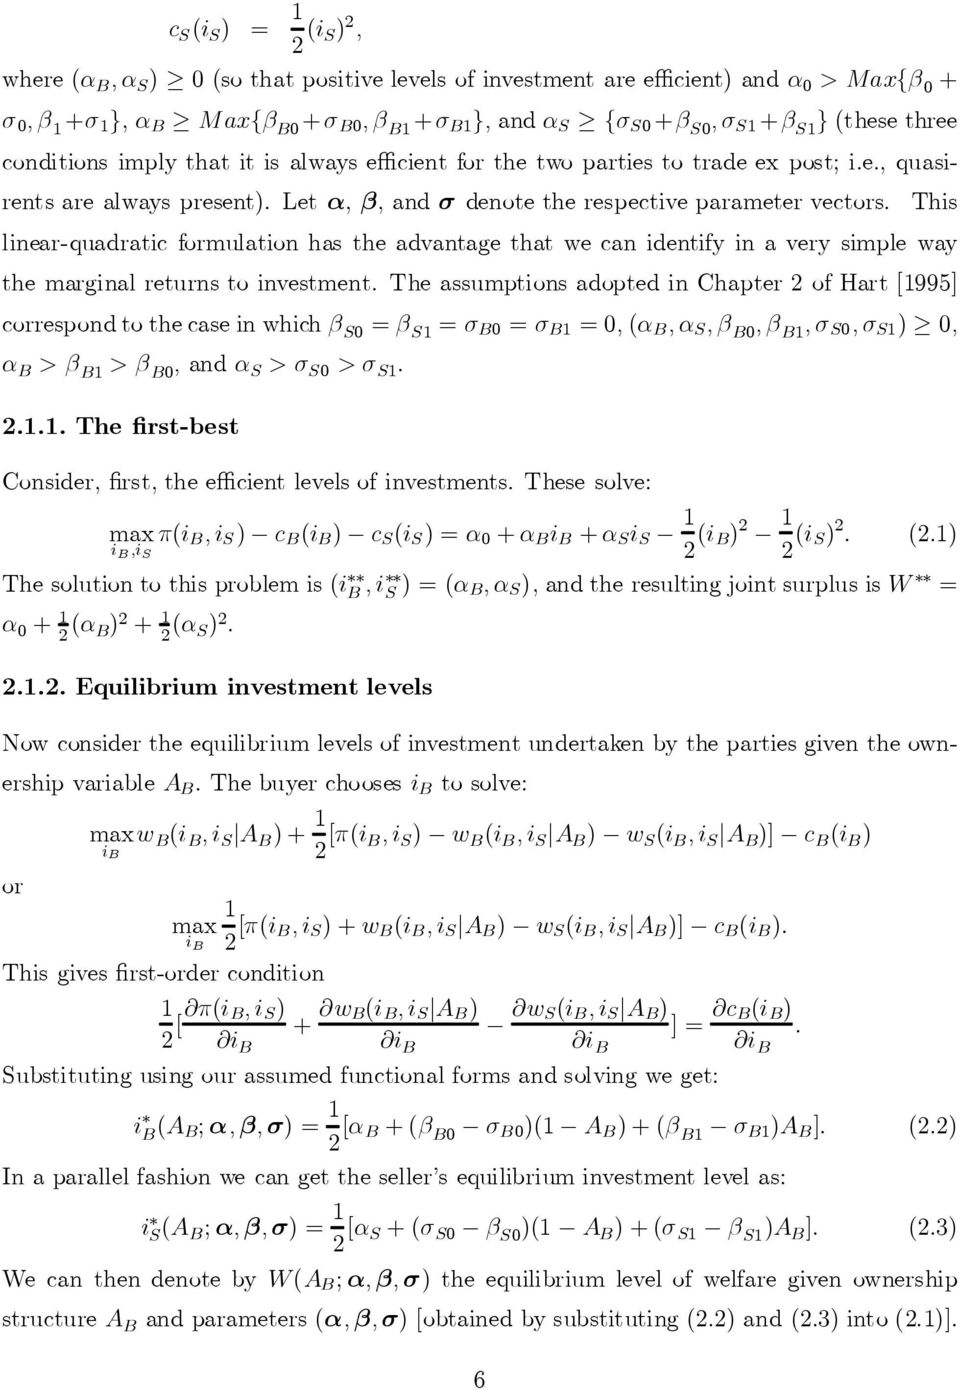 This linear-quadratic formulationhas theadvantagethat wecanidentify inavery simple way the marginal returns to investment.